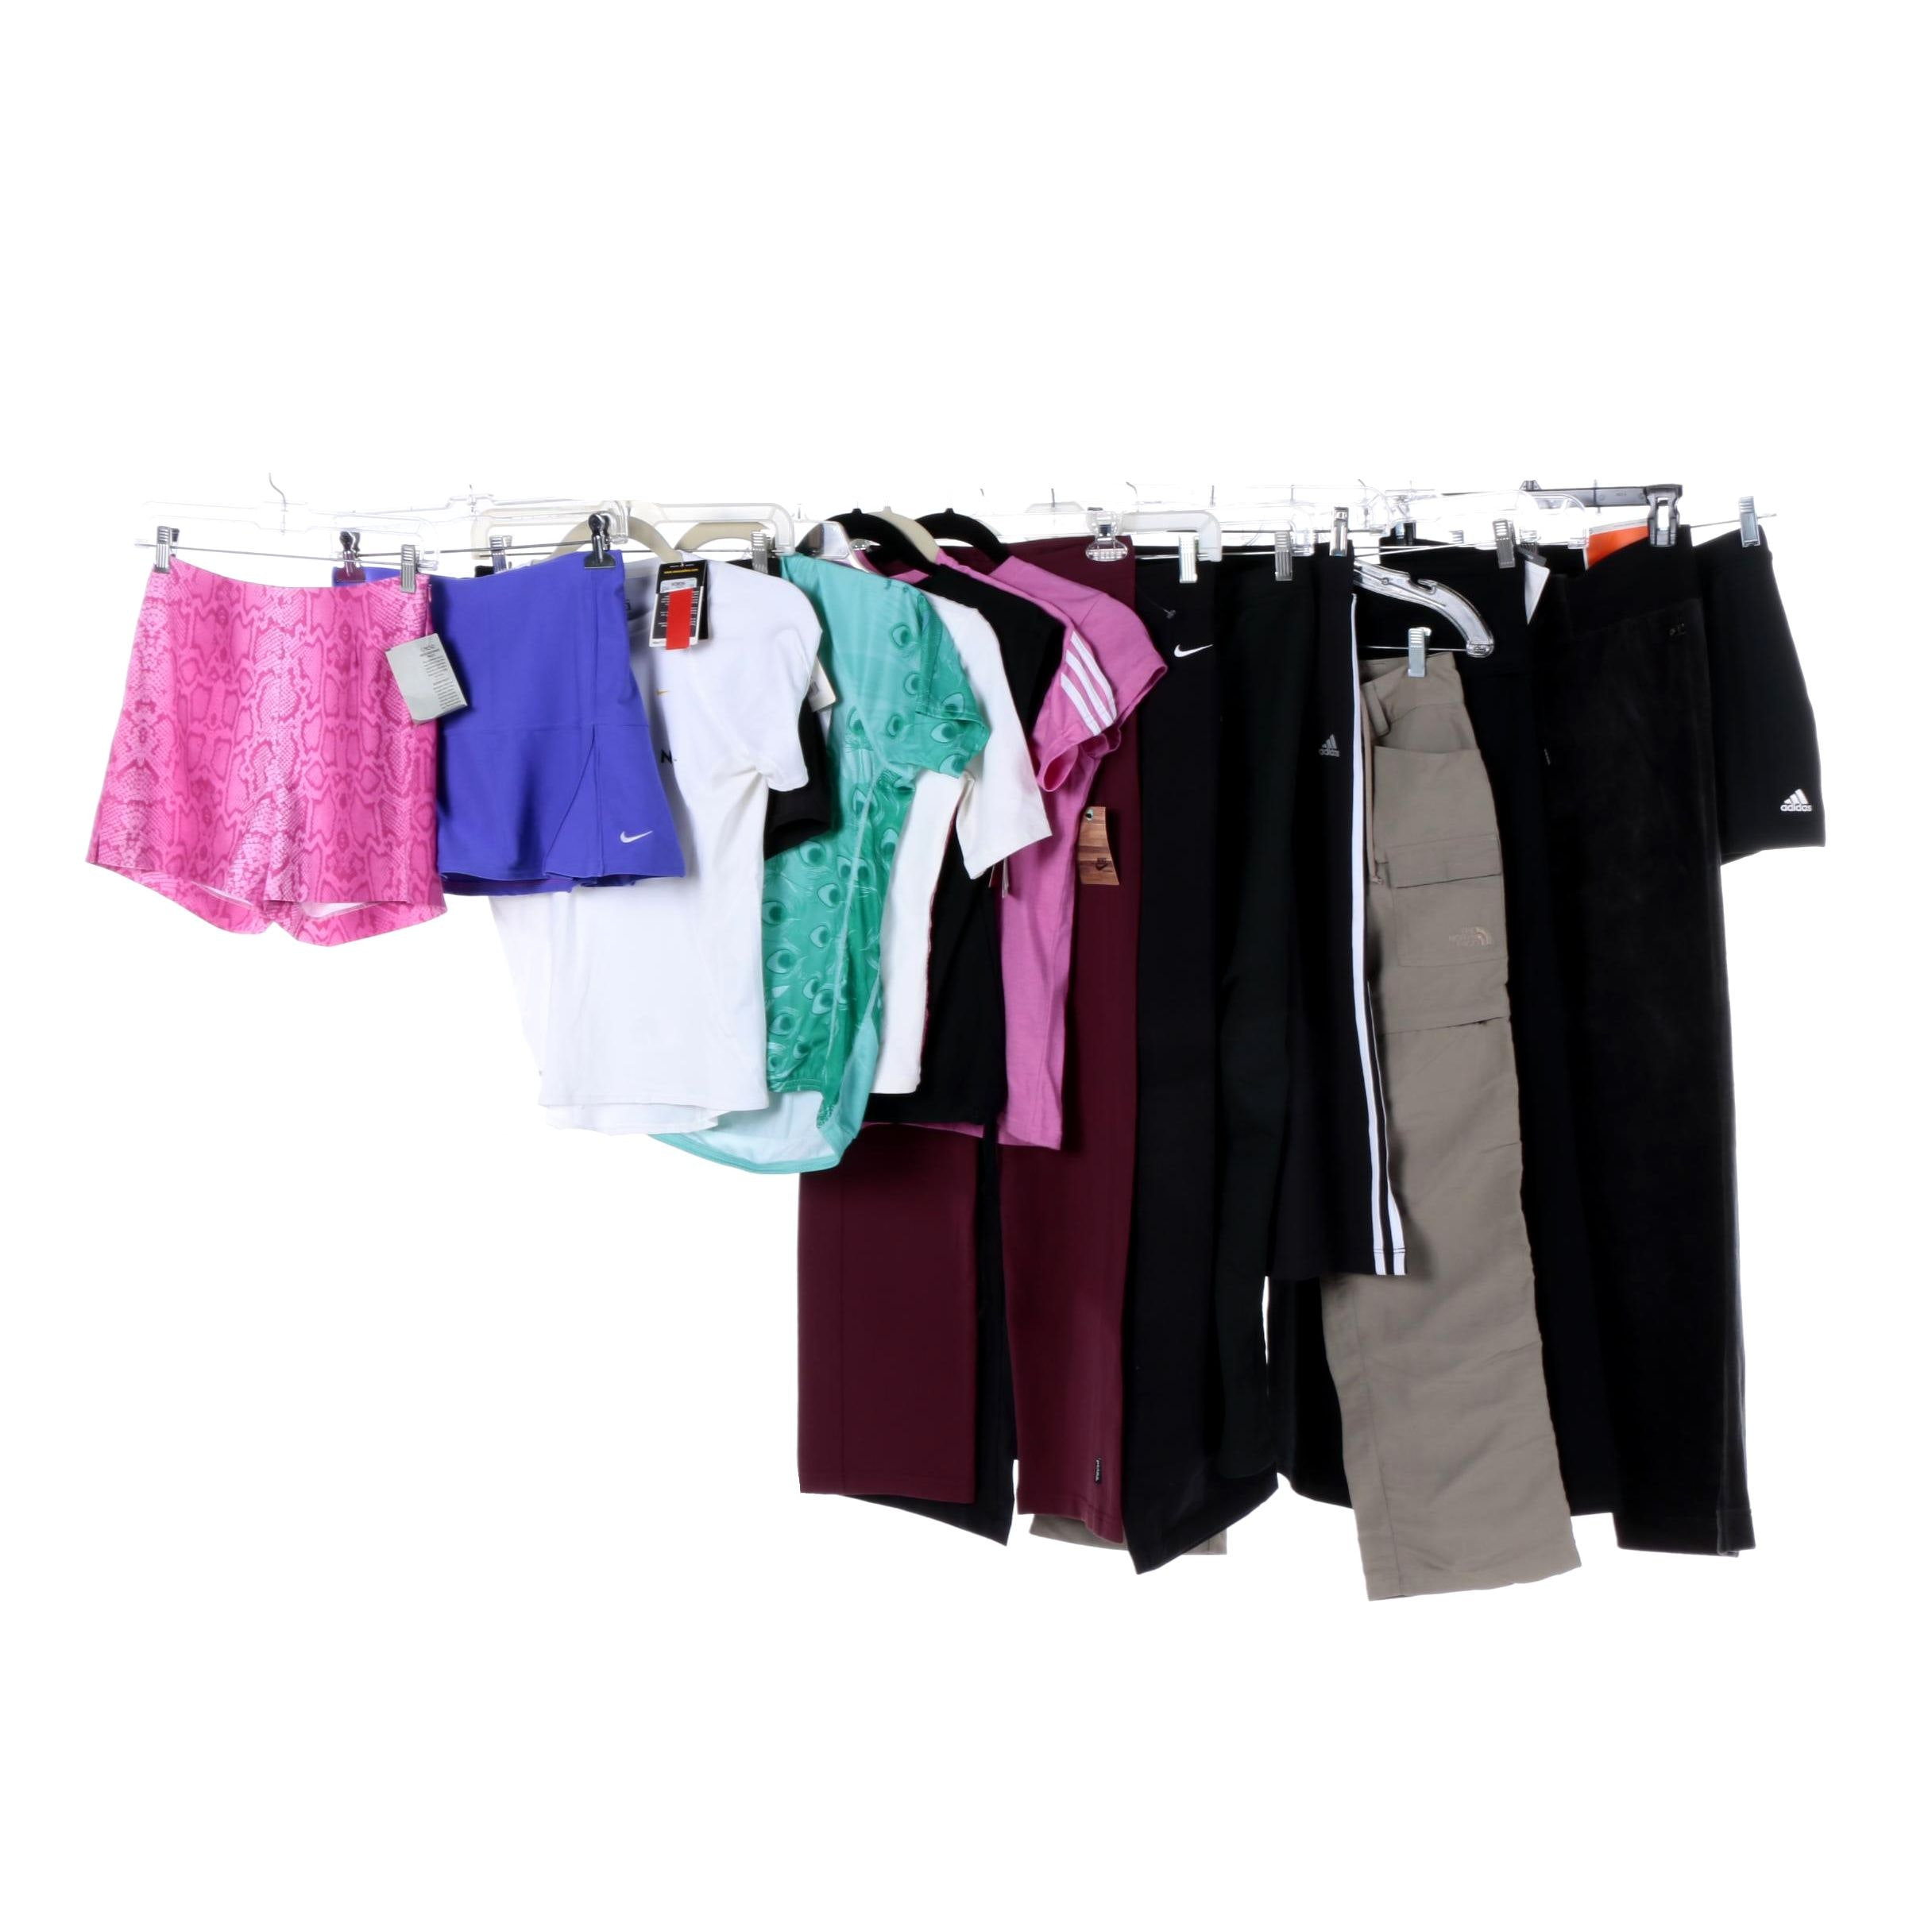 Women's Exercise Clothing Including Caché, Nike and Adidas